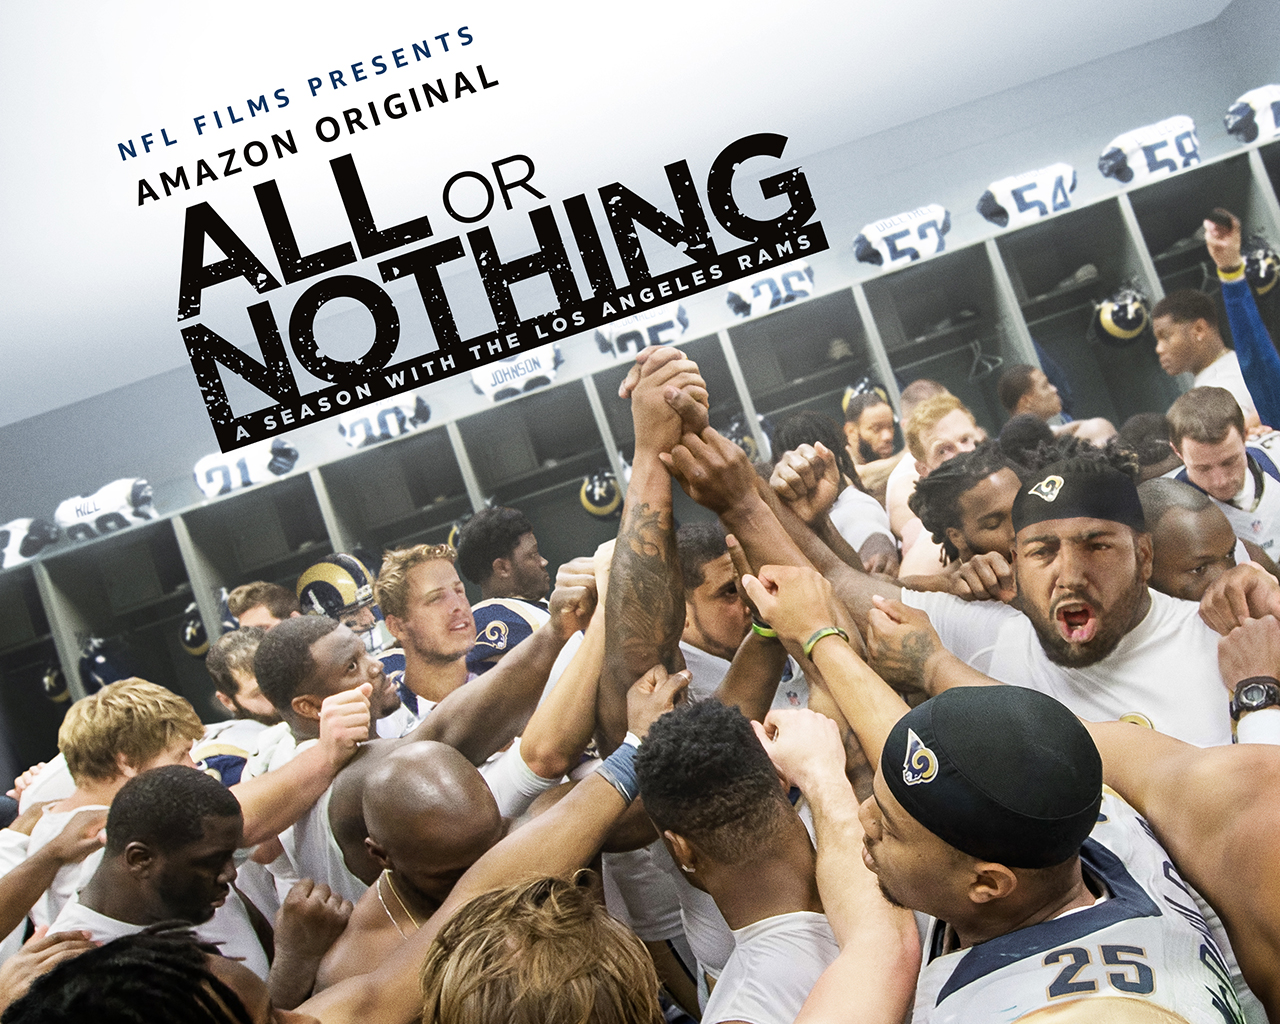 I Hate-Watched 'All or Nothing' Rams Edition So You Don't Have To